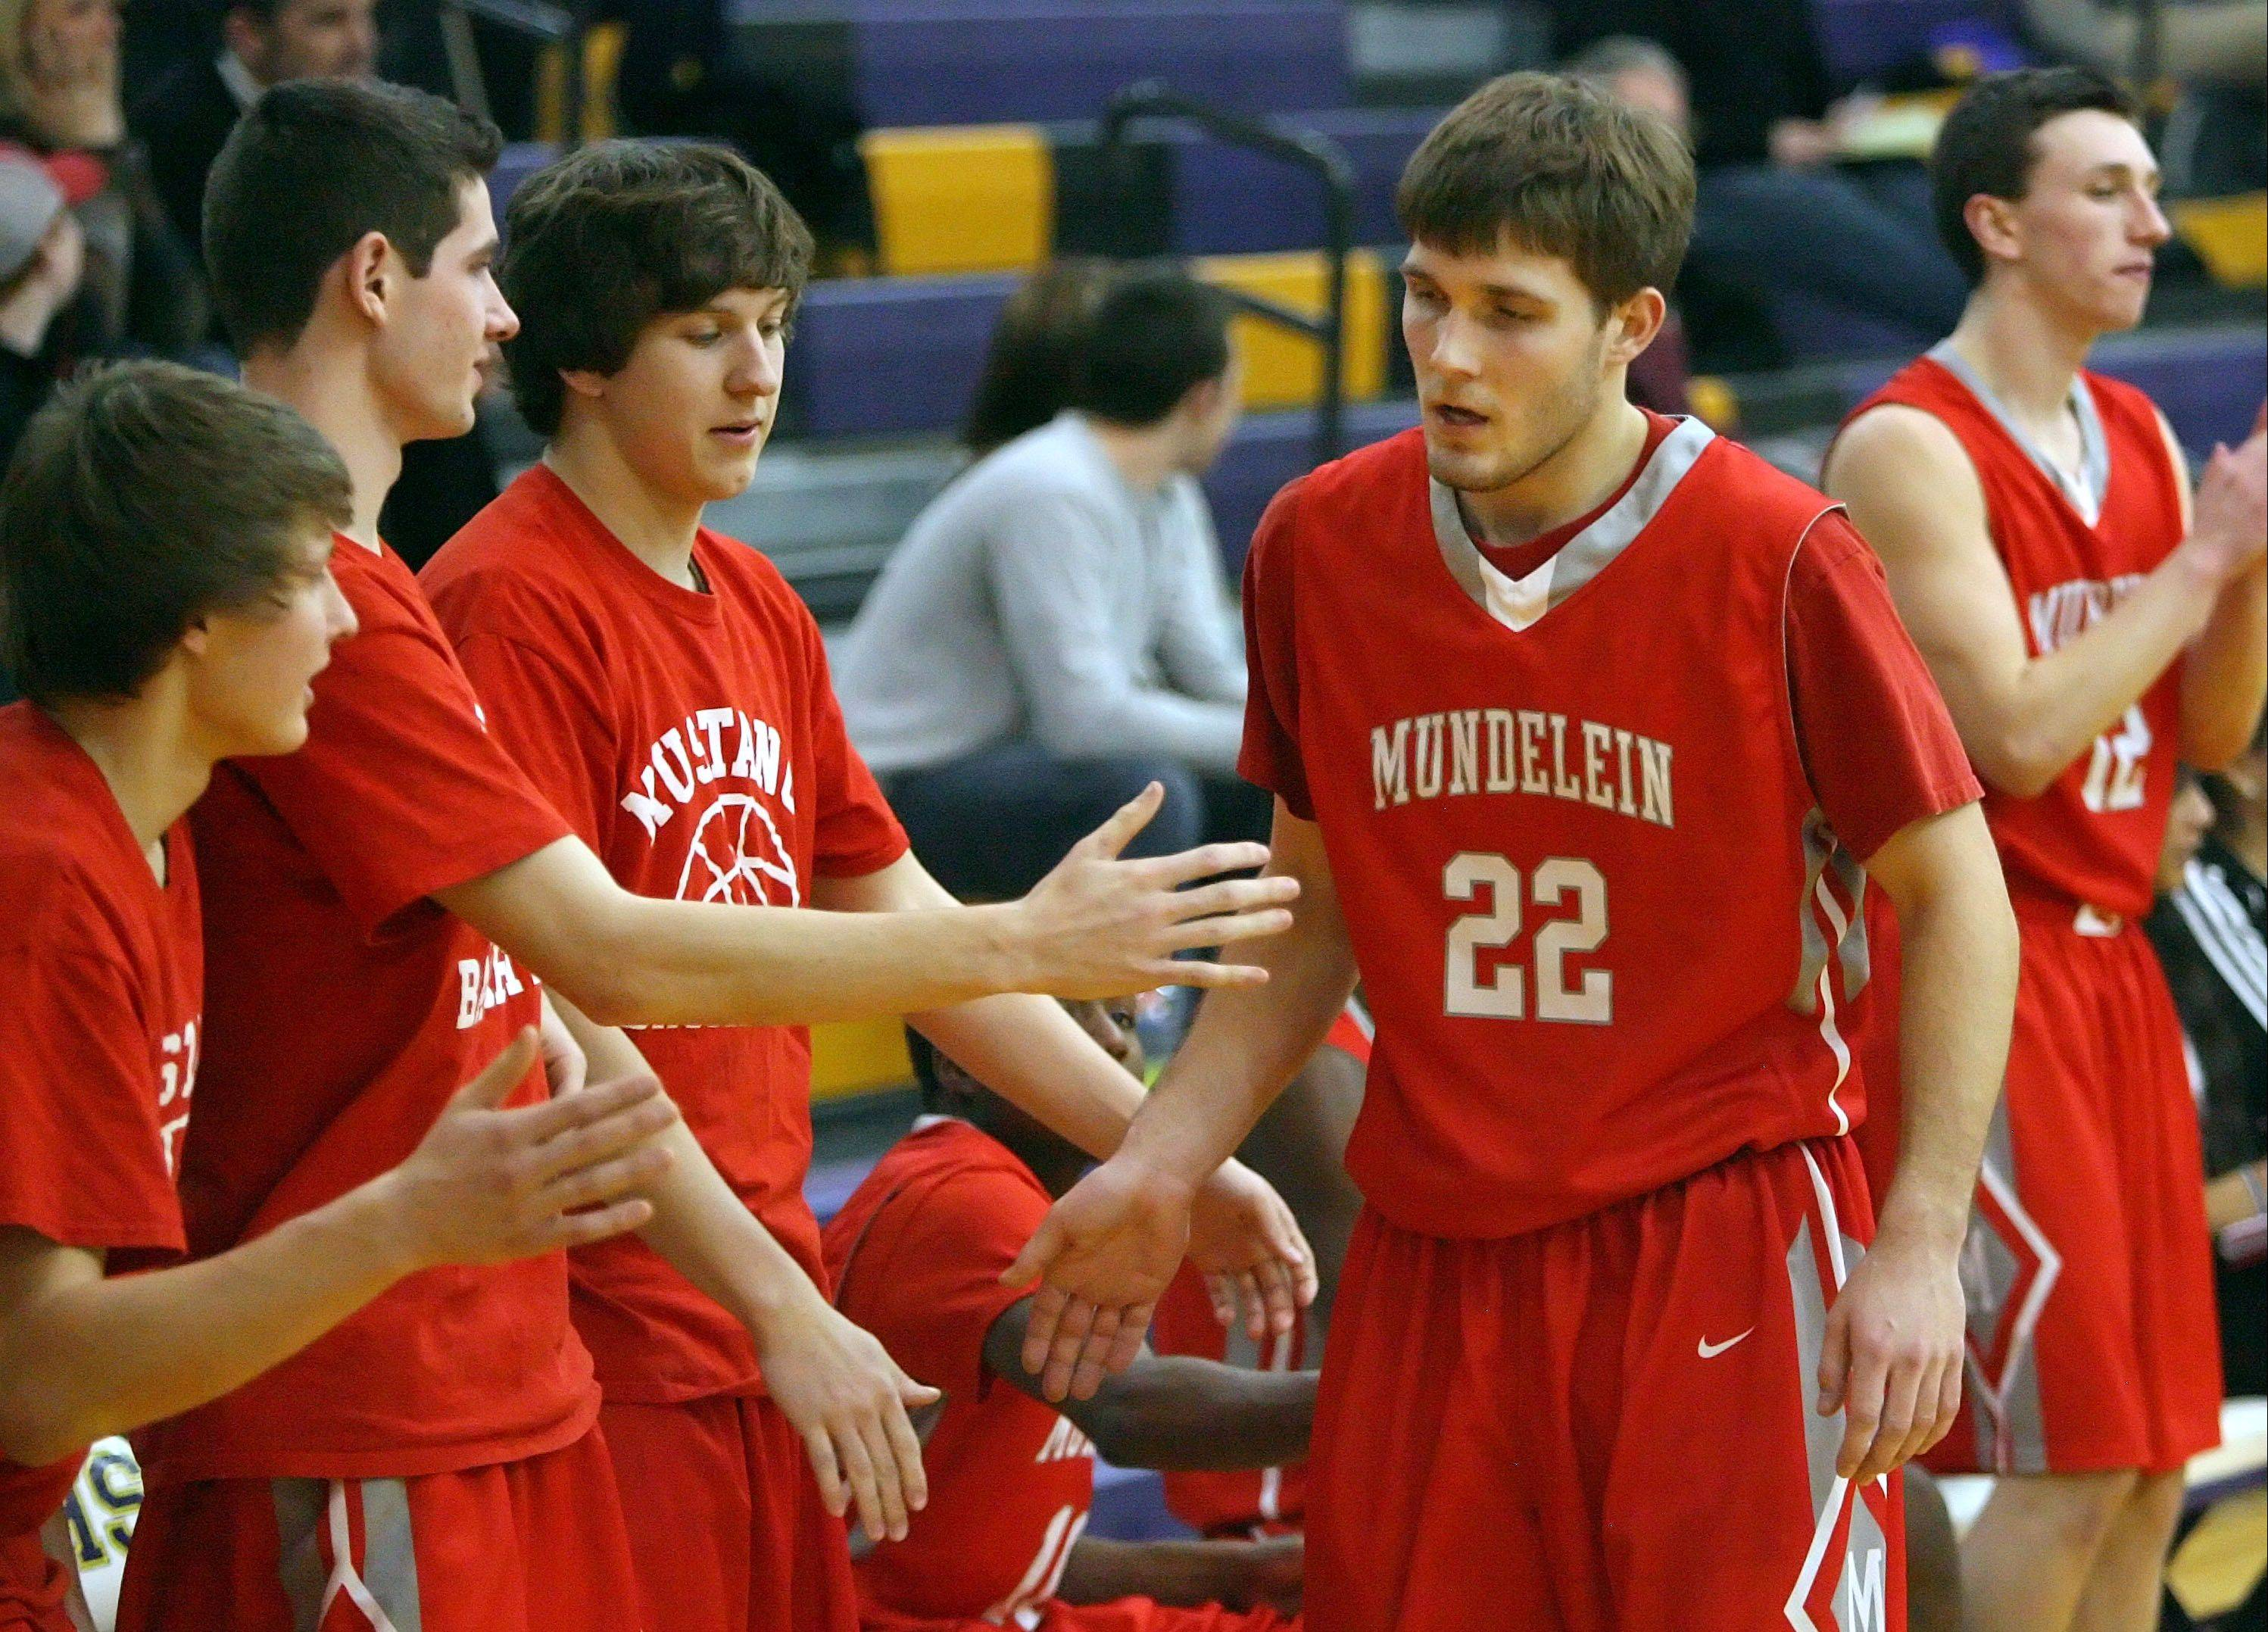 Mundelein's Robert Knar gets high-fives from the bench after breaking the all-time Mundelein scoring record held by Kyle Kessel on Wednesday night at Wauconda.